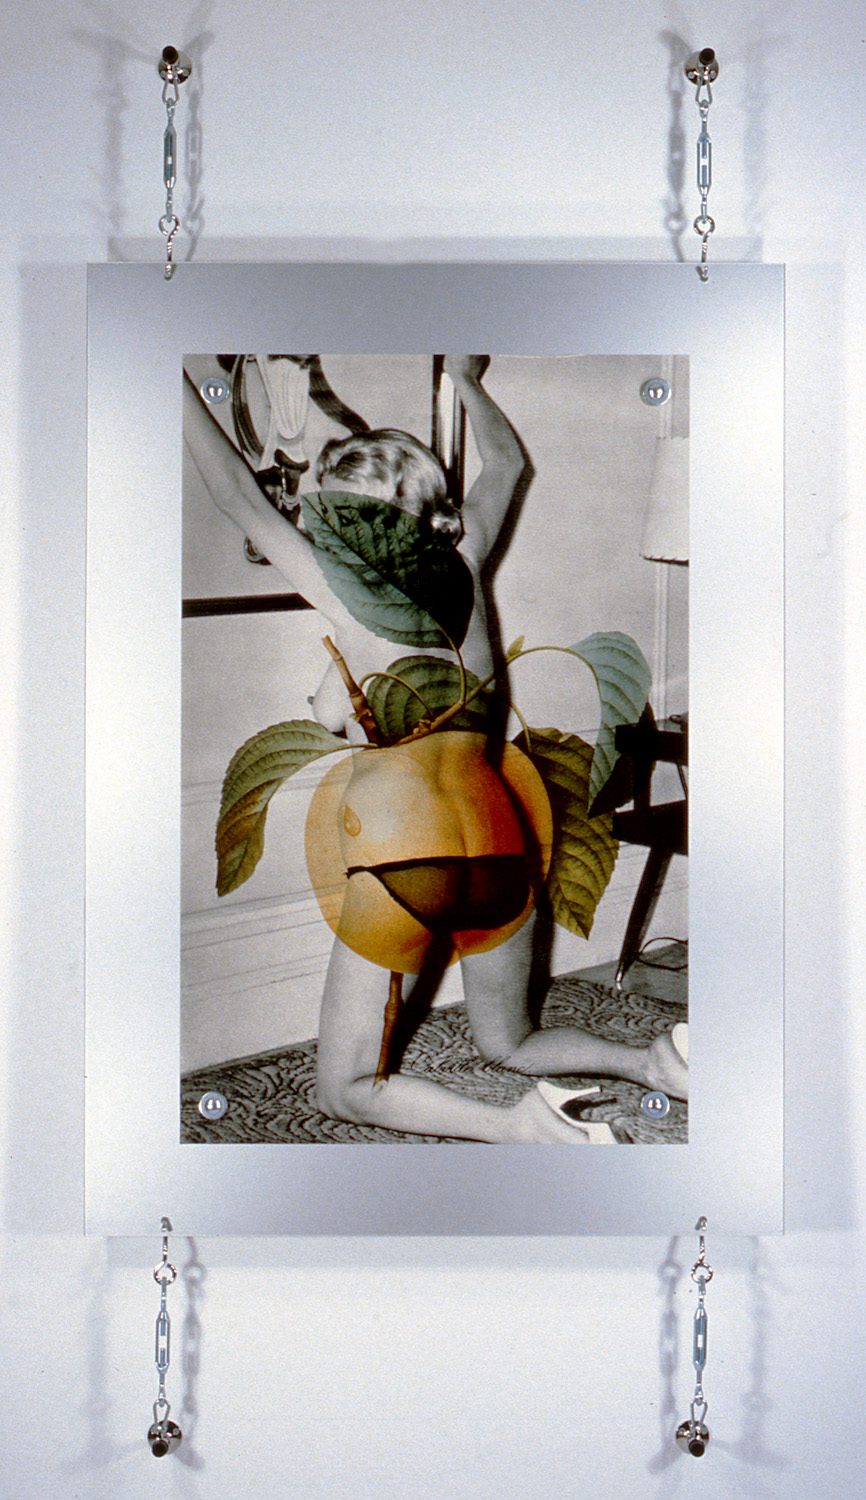 "S/M Nude , 1995, 91 x 45 1/4"", digital print, metal and hardware."